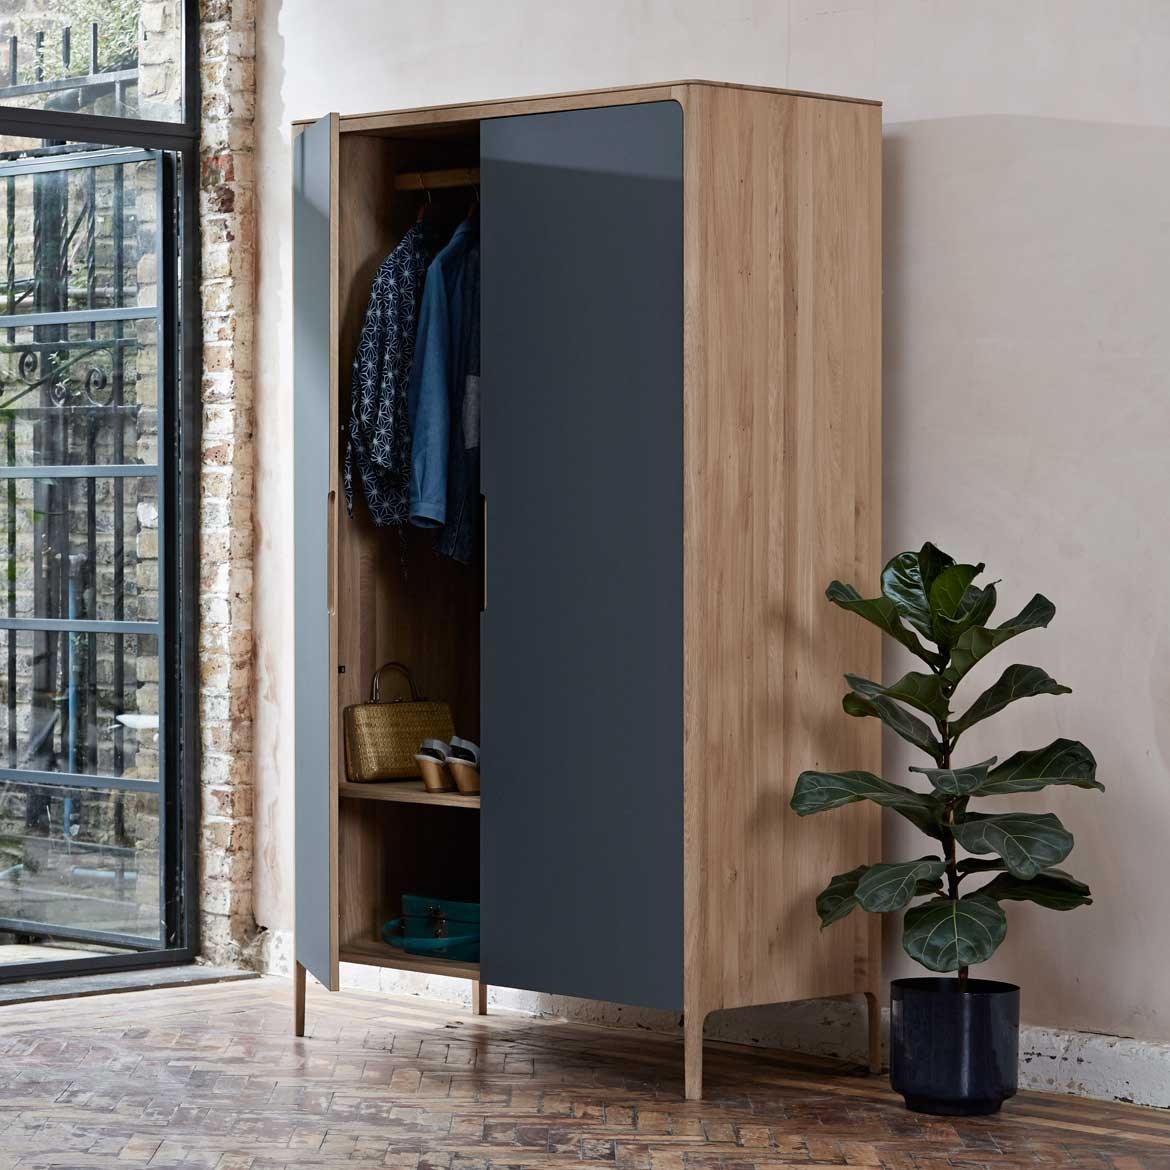 Como narrow wardrobe - 2 doors